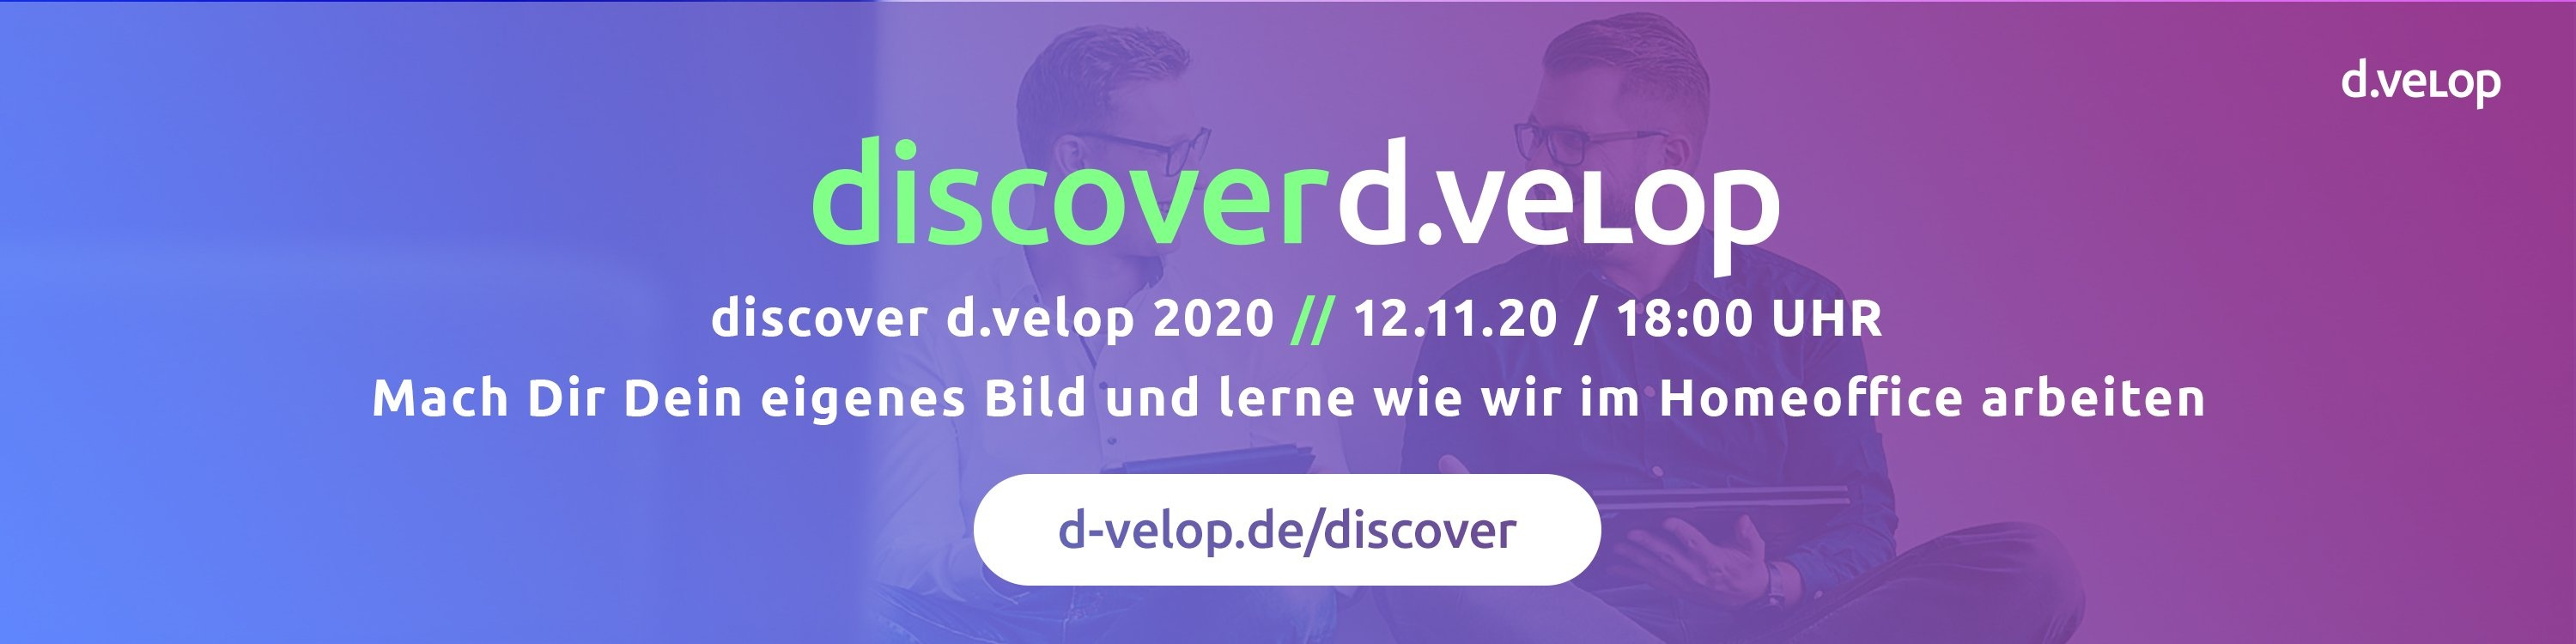 Discover d.velop